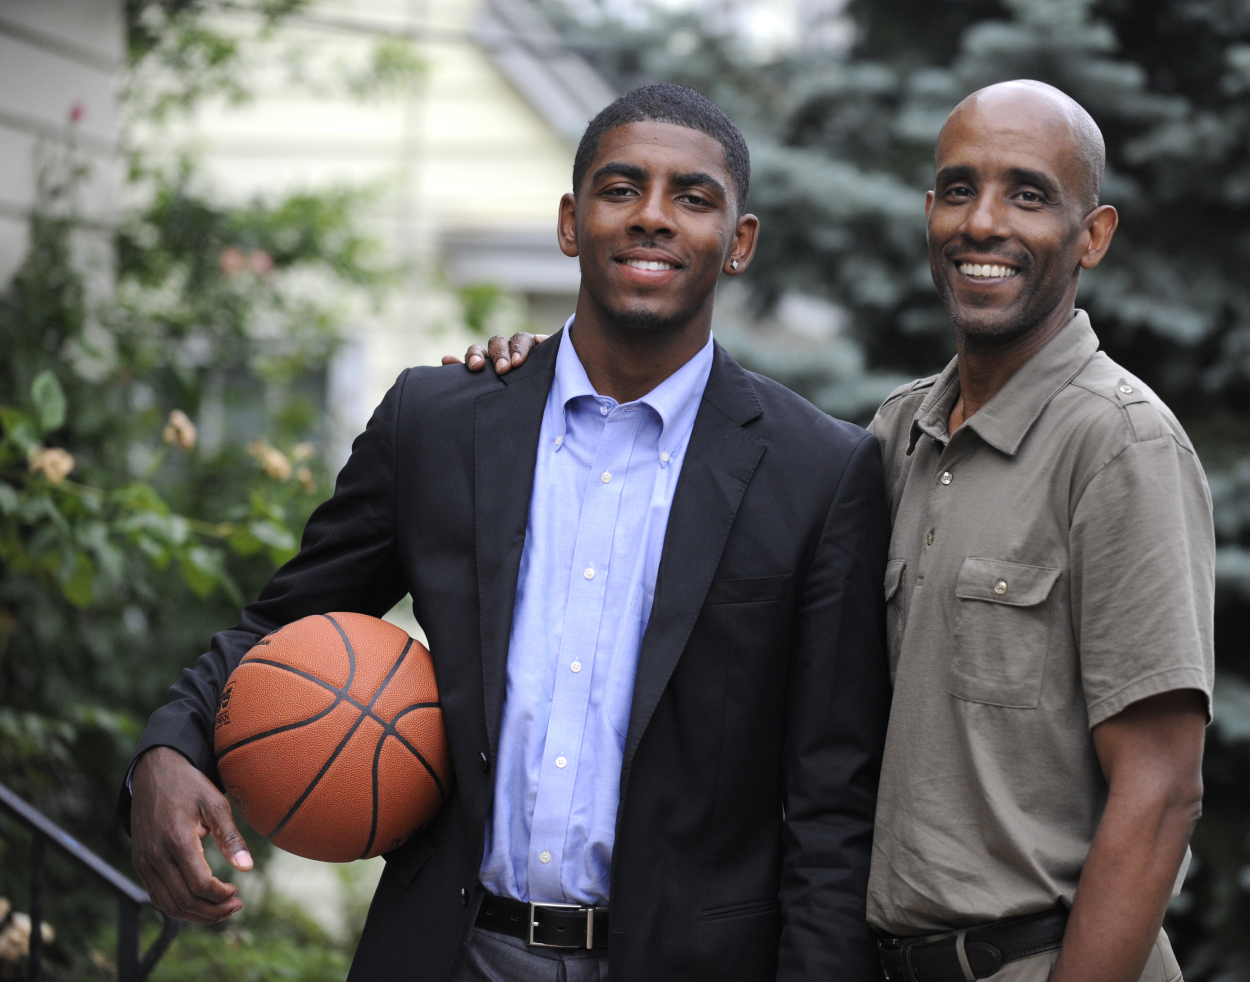 Kyrie Irving posing for a photo with his father